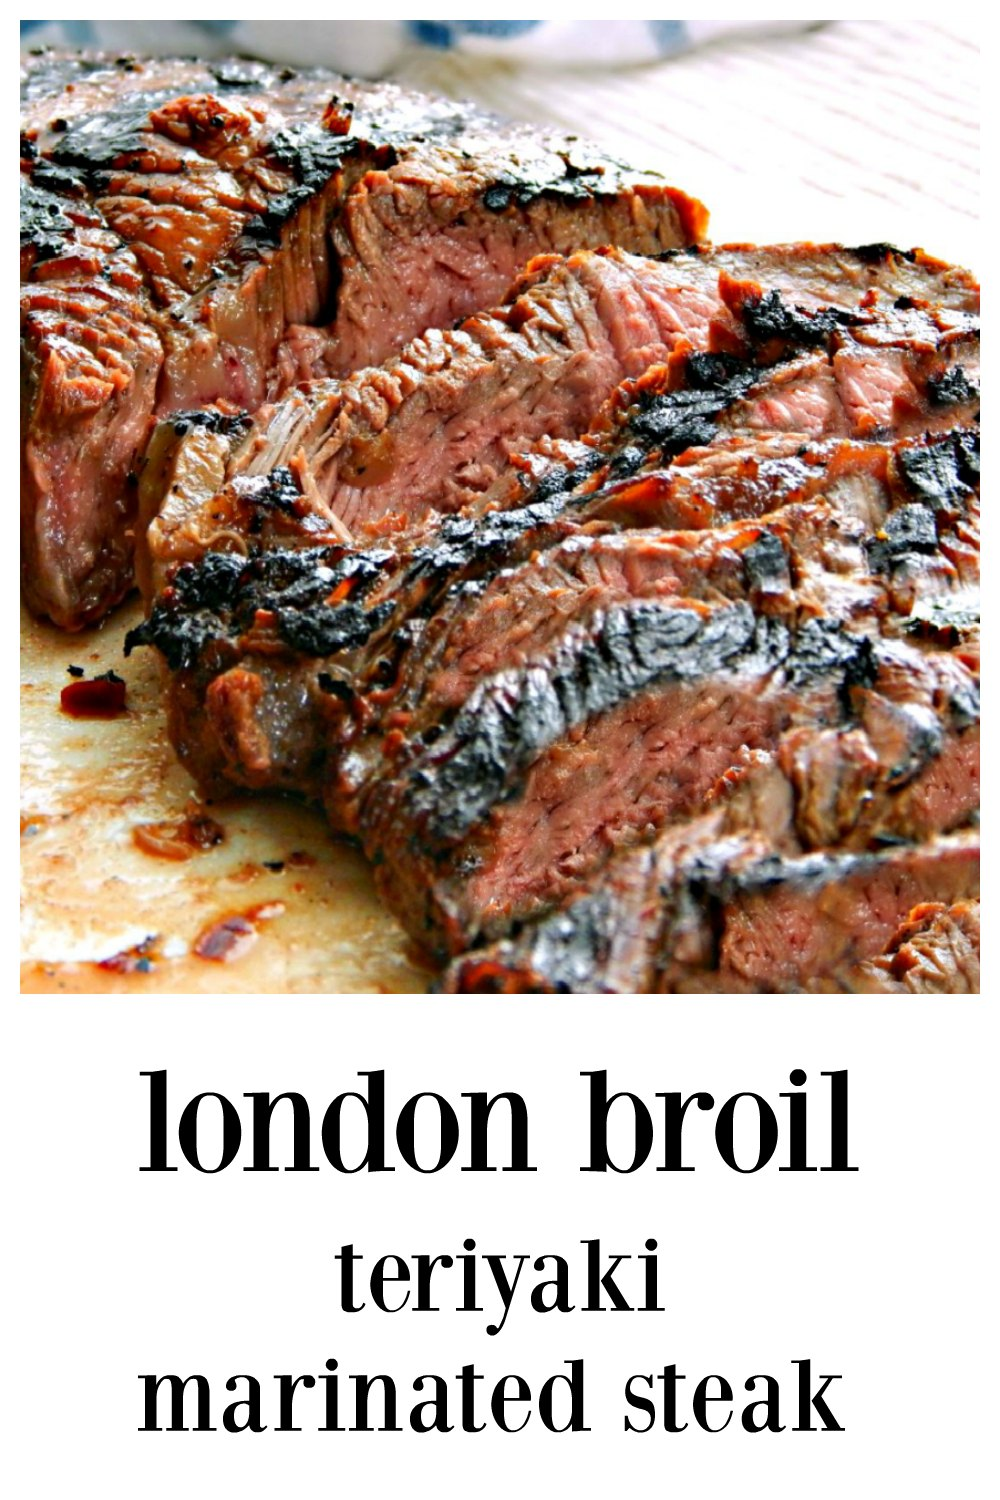 London Broil, Teriyaki Marinated Steak is an American classic, despite the name! The updated marinade is seared into the steak! Flavor for days! #LondonBroil #FlankSteak #TeriyakiMarinatedSteak #GrilledSteak